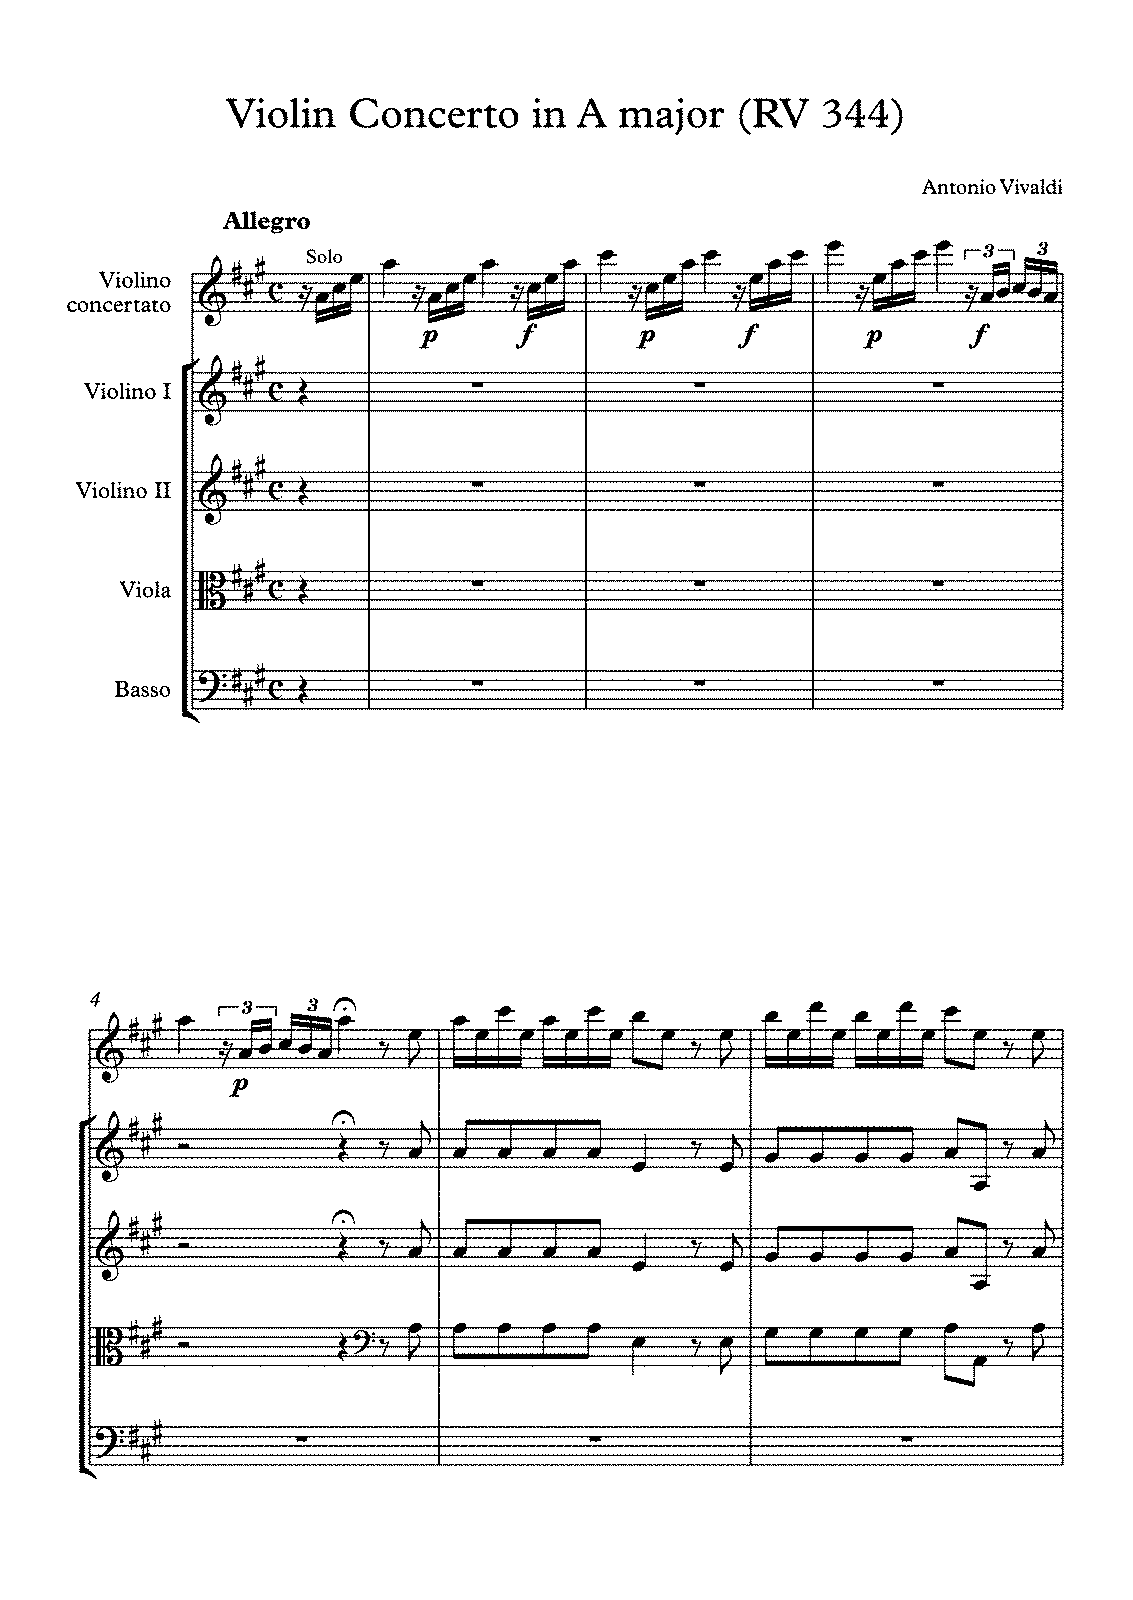 PMLP112197-Violin Concerto in A major (RV 344).pdf